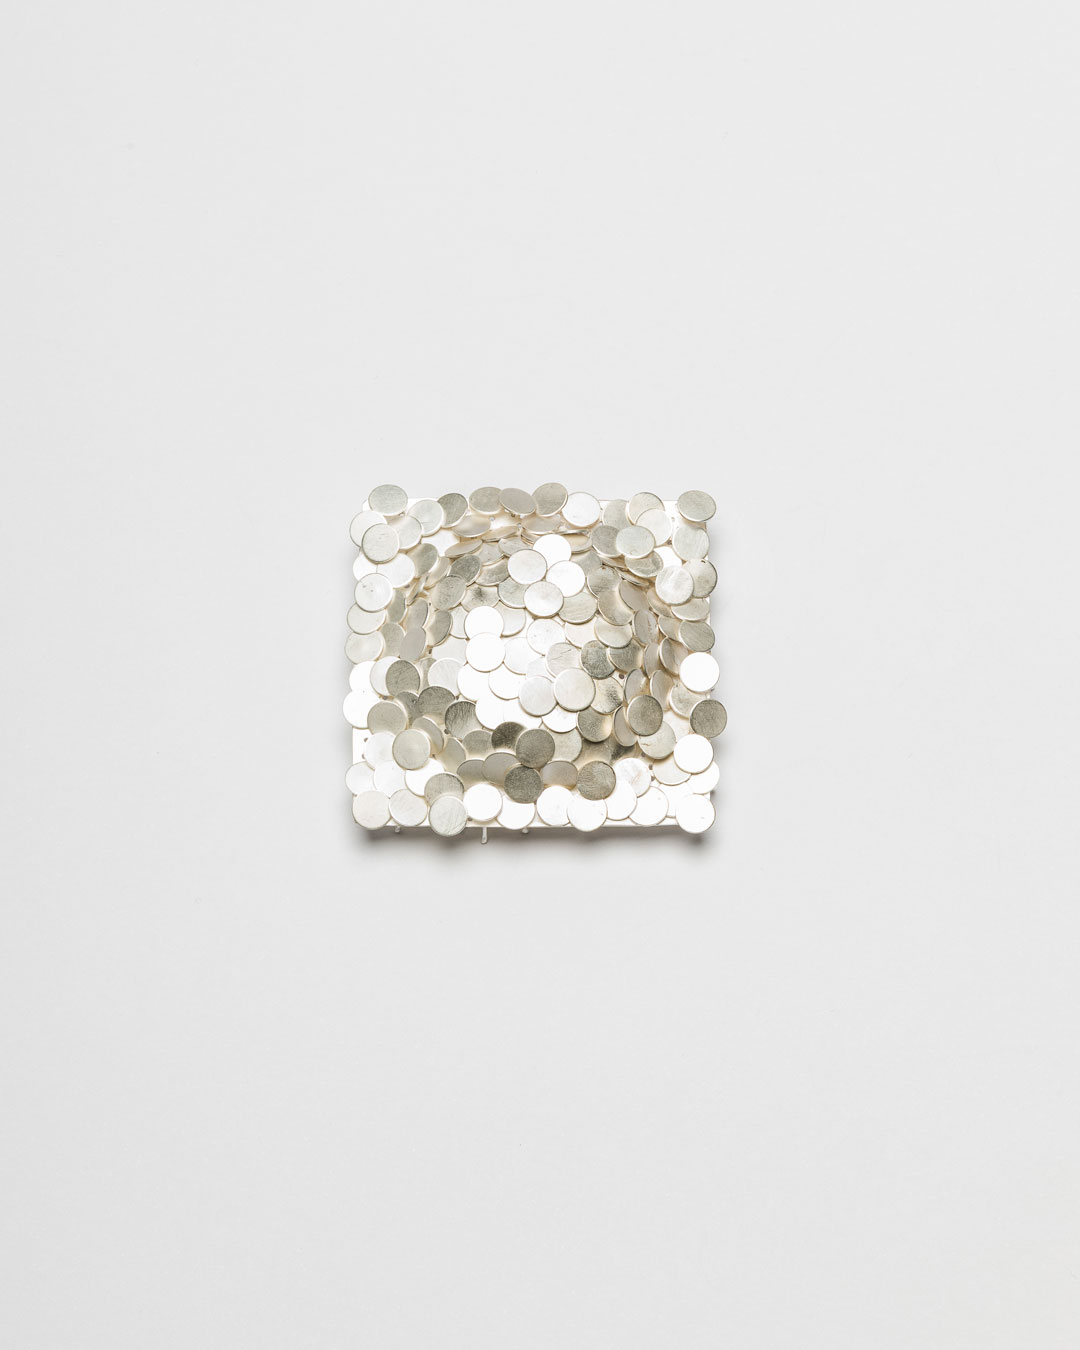 Christine Matthias, untitled, 2018, brooch; silver, 62 x 62 x 22 mm, €1825